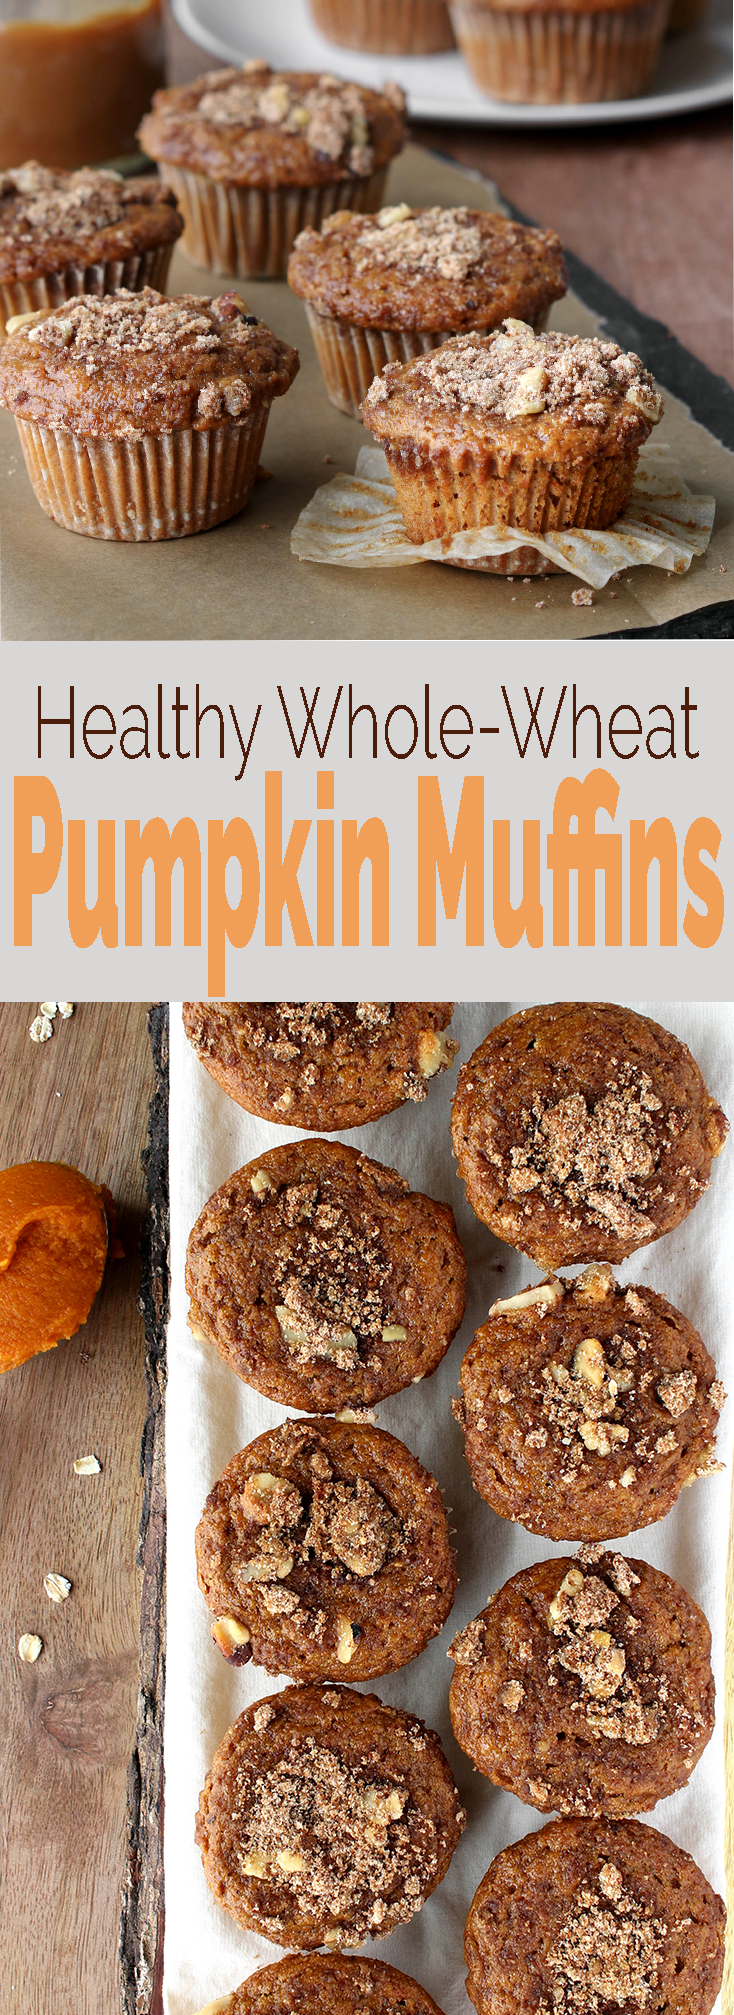 One bowl Whole Grain Pumpkin Muffins with a secret healthy ingredient: yogurt! Healthy, easy to make and seriously satisfying.